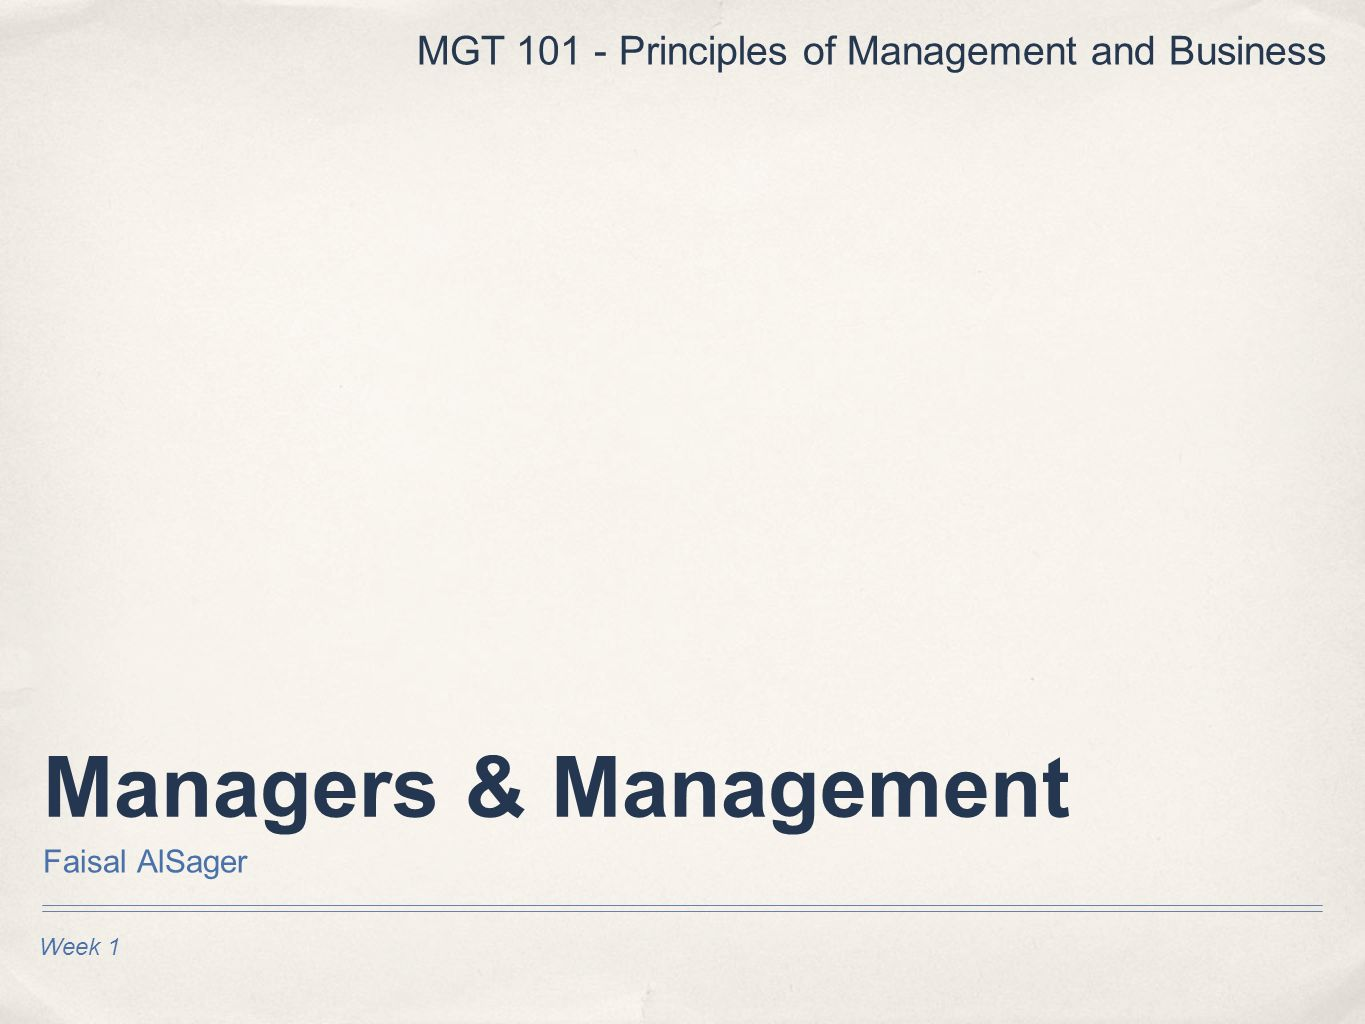 Managers & Management Faisal AlSager Week 1 MGT 101 - Principles of Management and Business